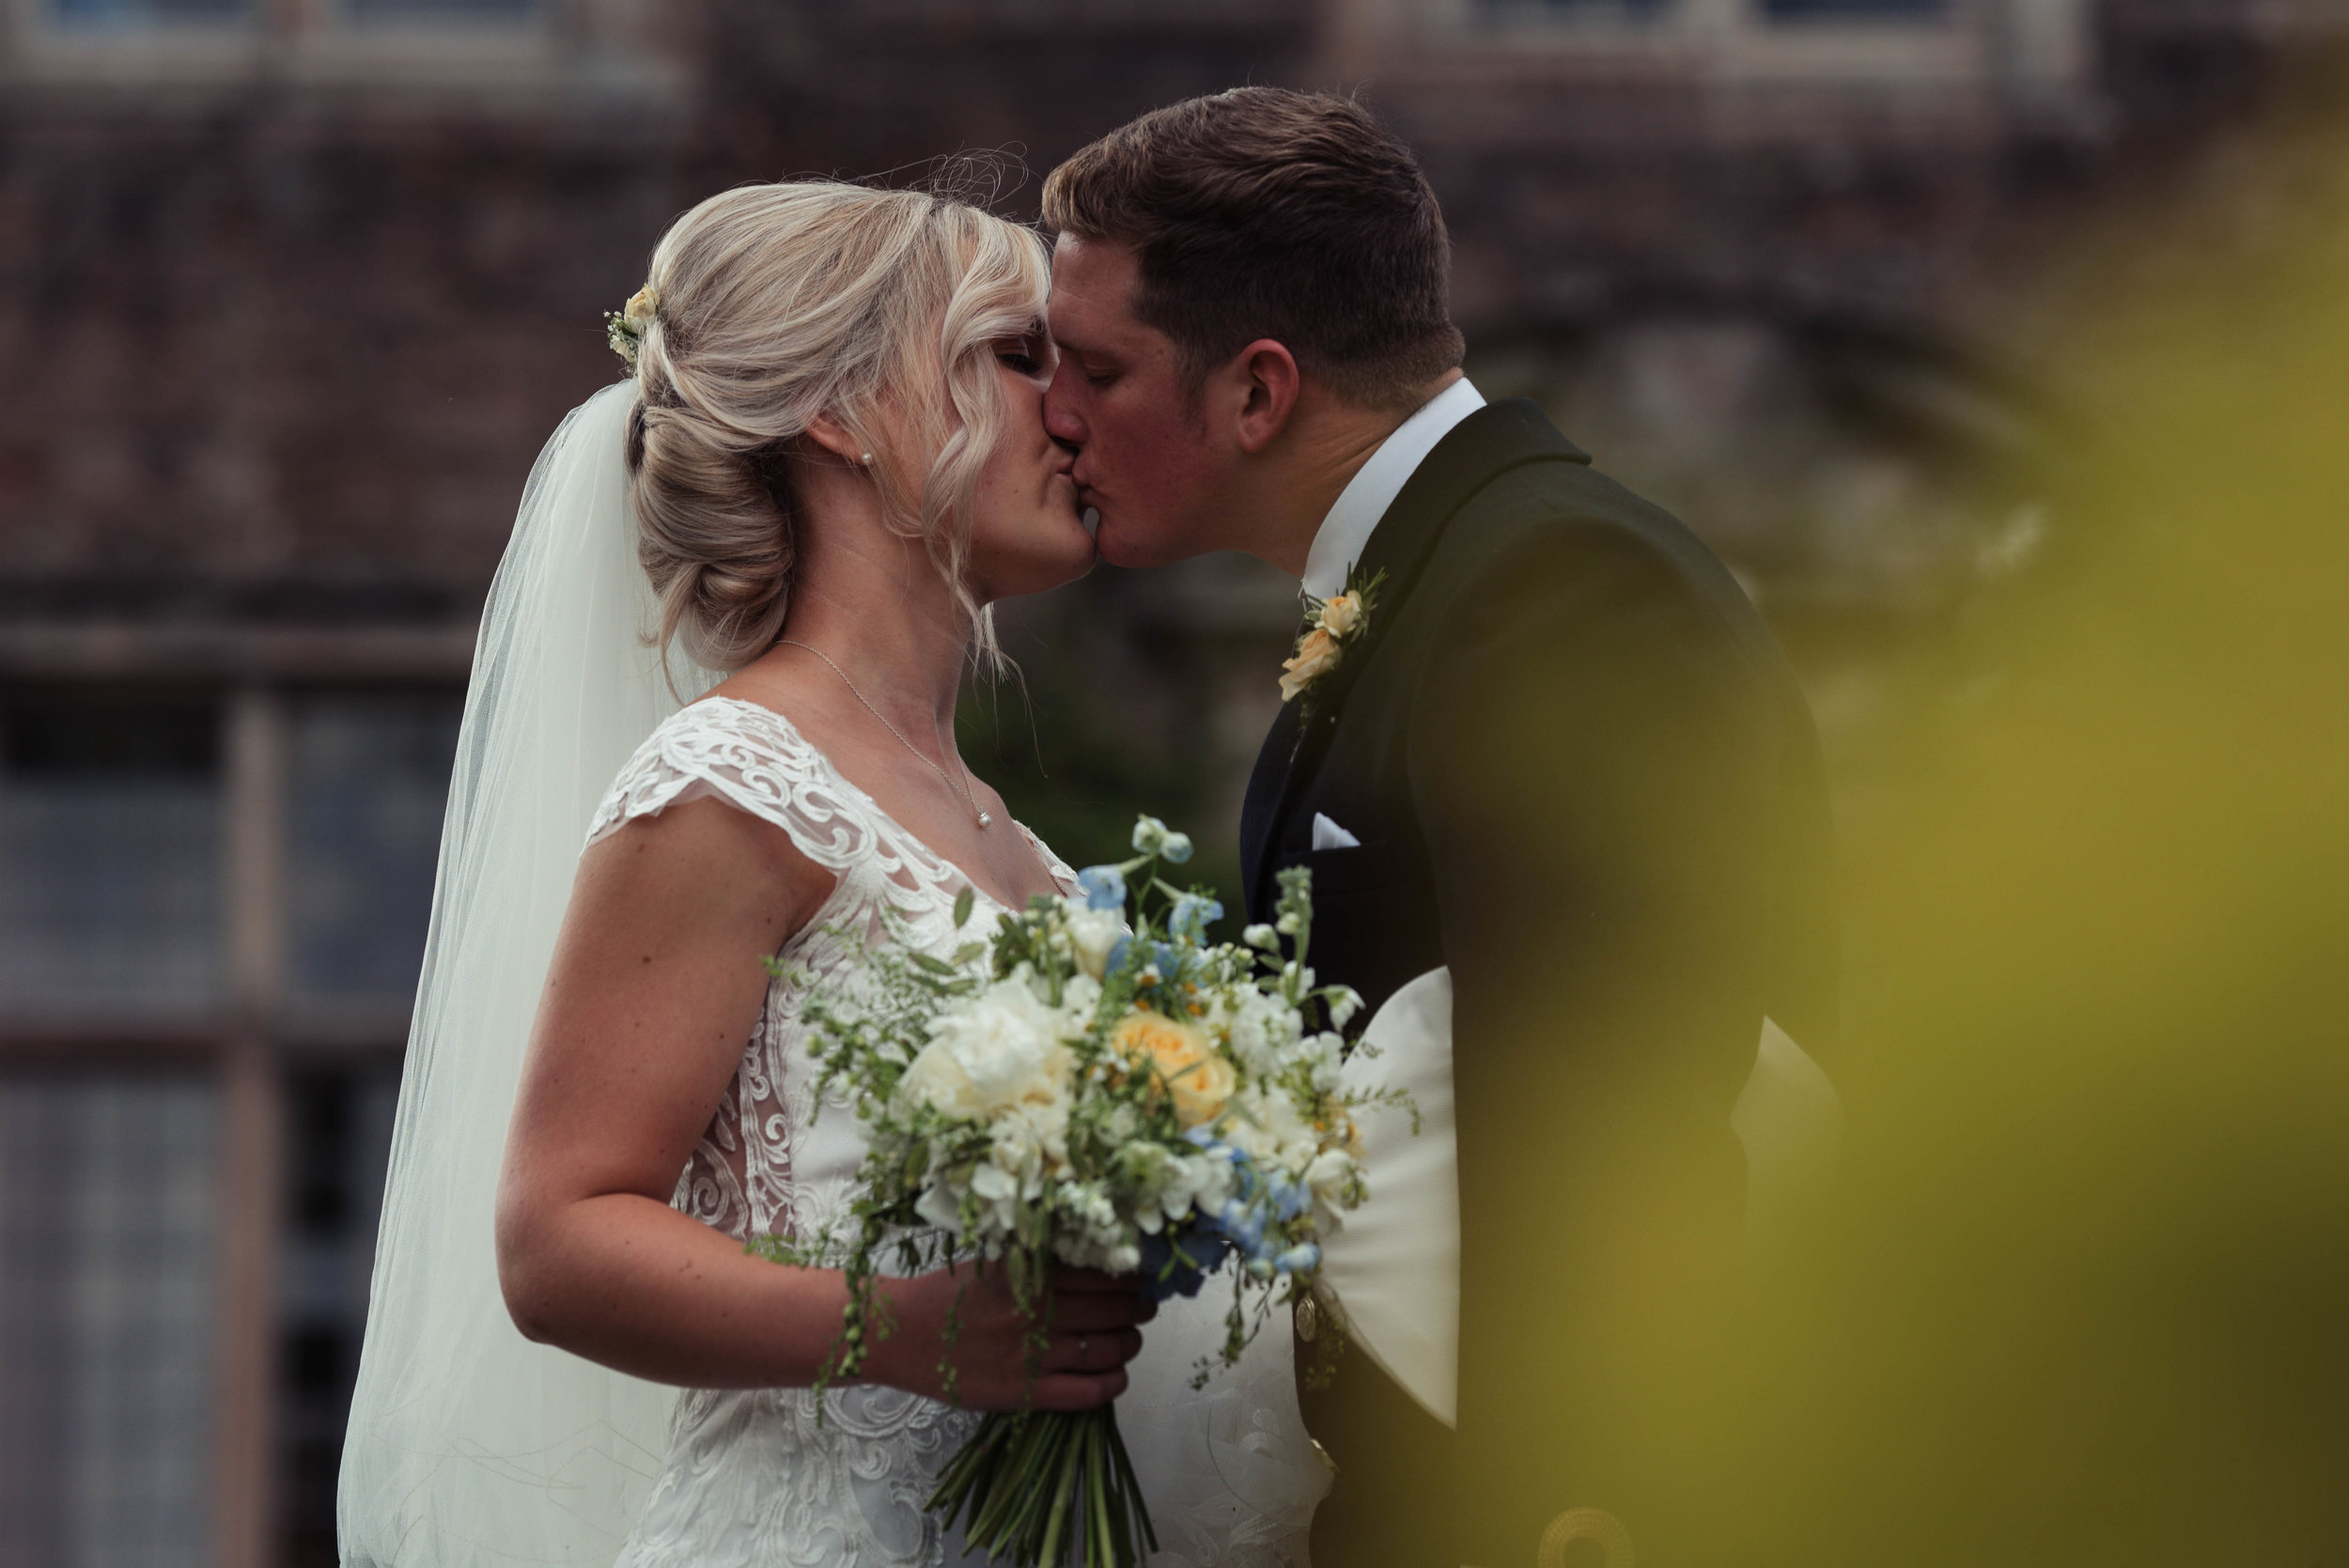 The light on the bushes reflects on the bride and grooms face as they share a kiss